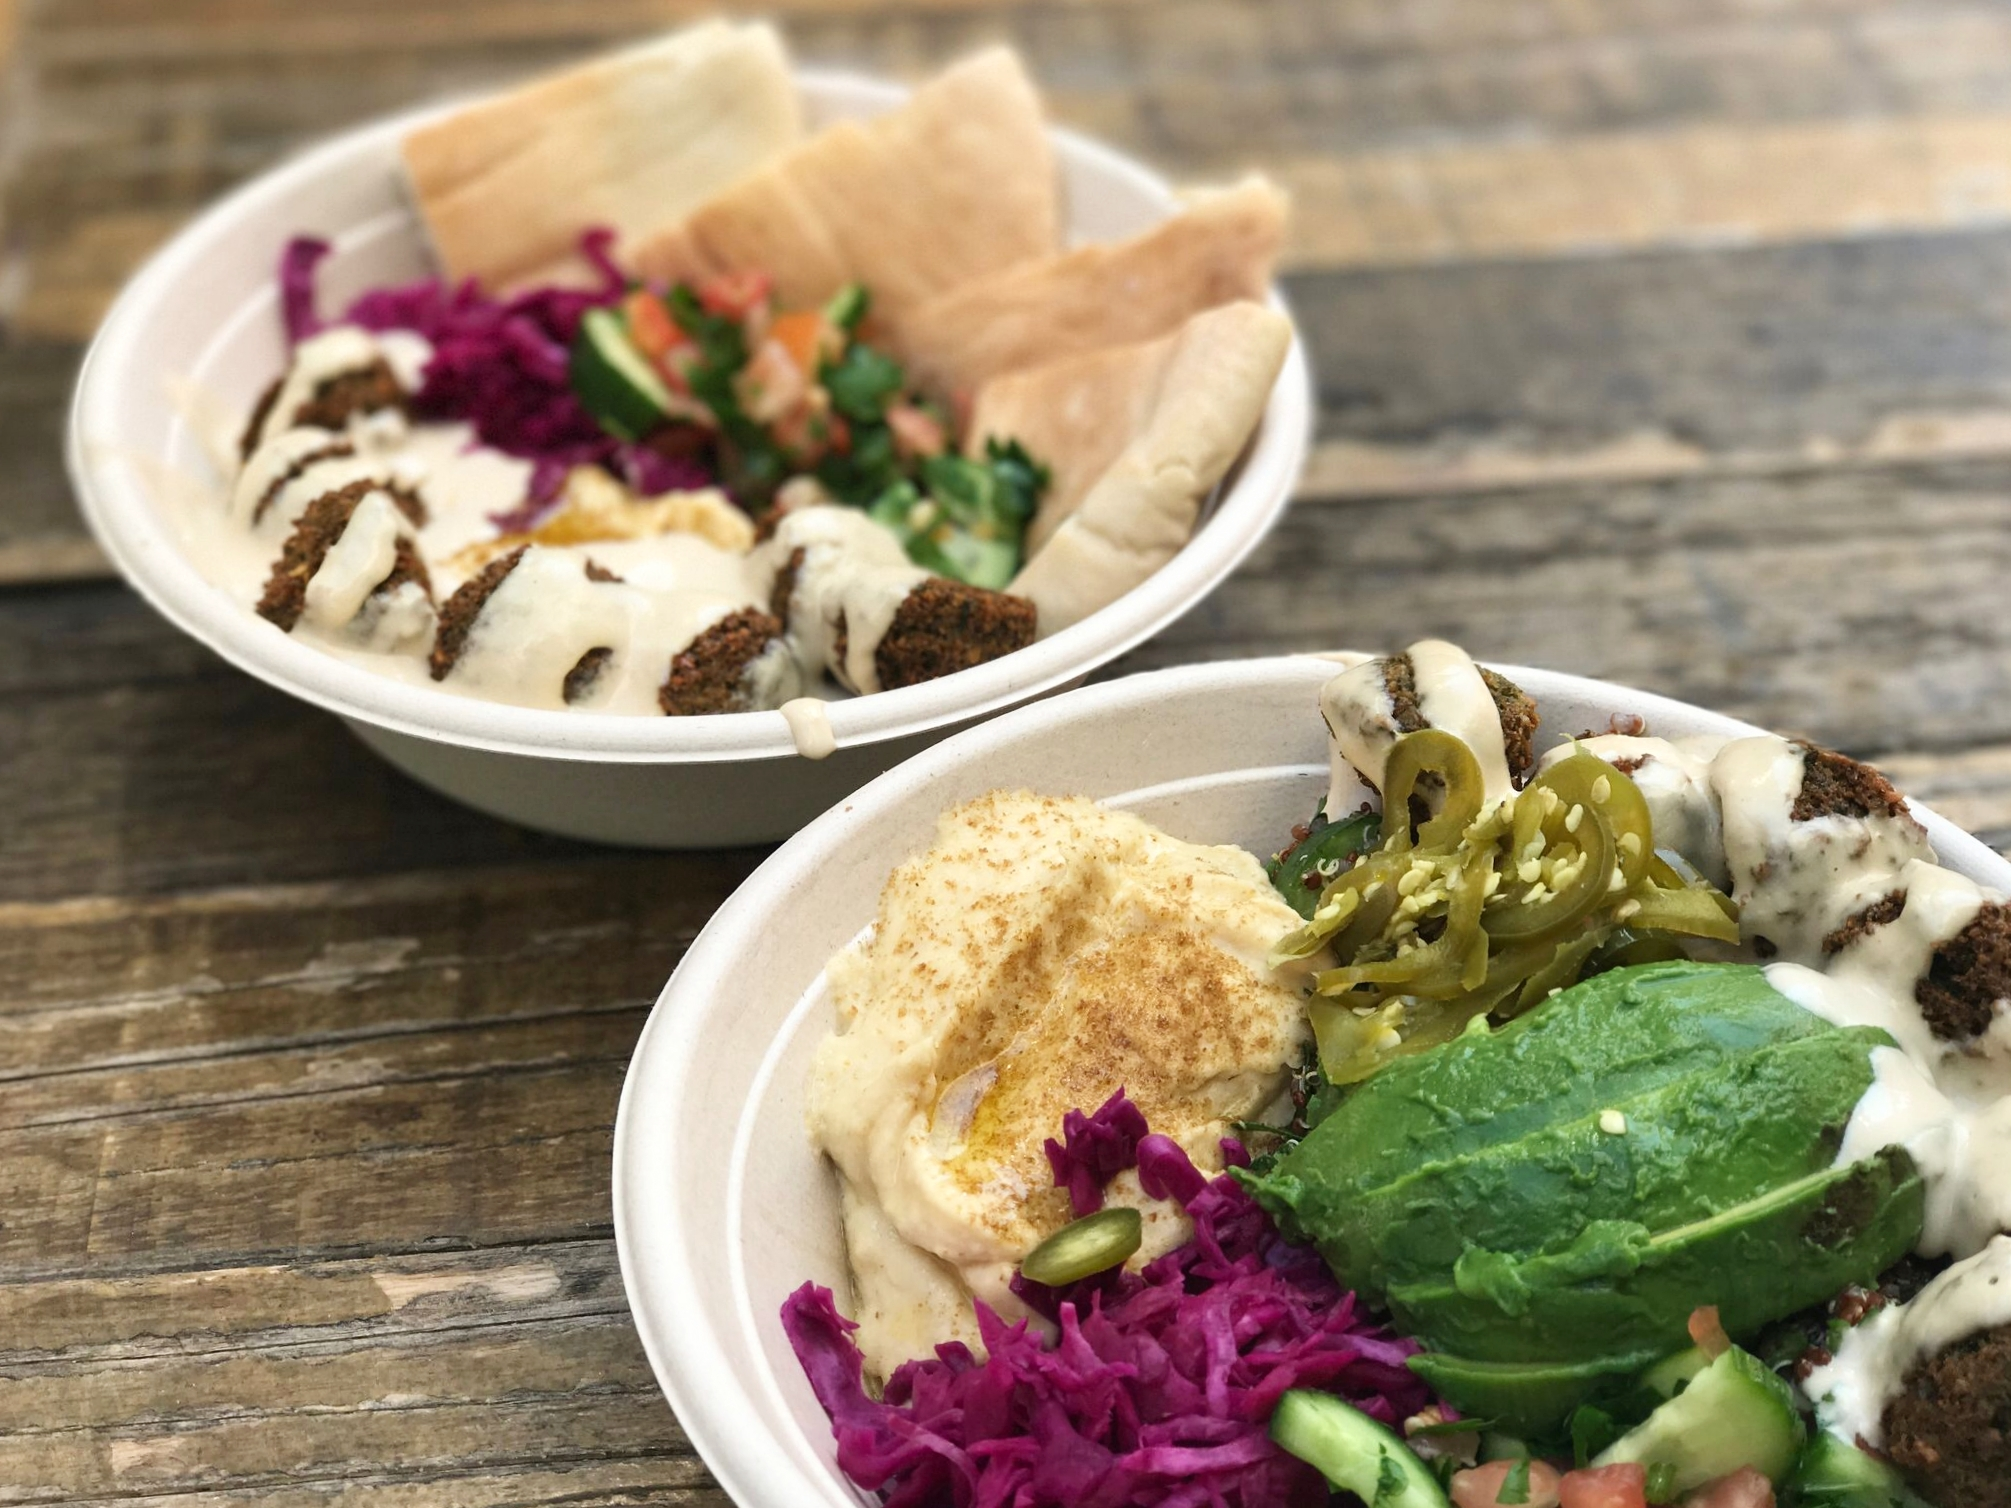 Falasophy's Bowls & Boxes are amidst their most popular menu items | photo courtesy of 100eats